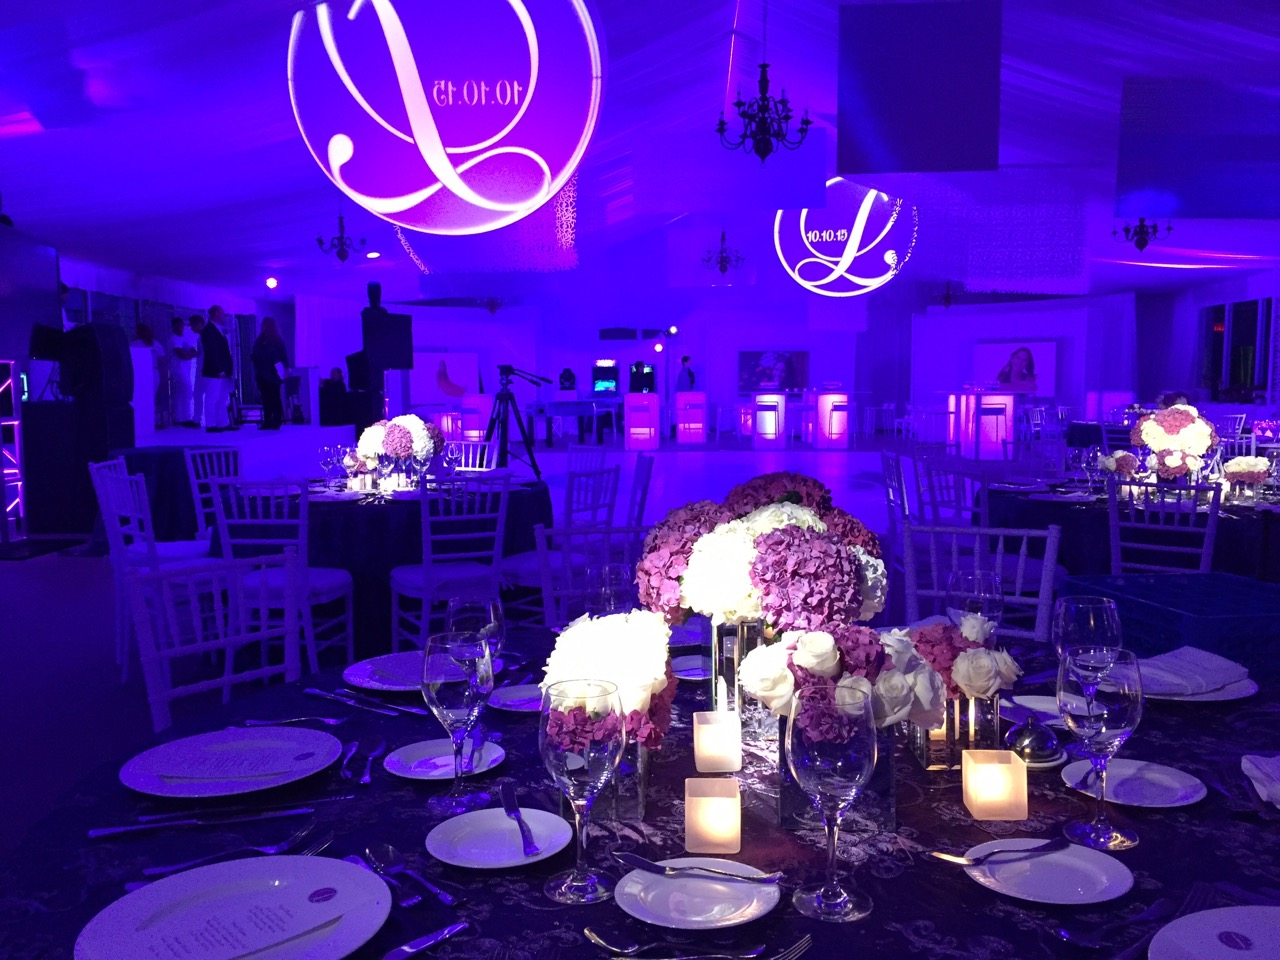 Eggsotic+Events+Lighting+and+Decor+Rentals+NJ+NYC+Event+Design++-+12.jpg